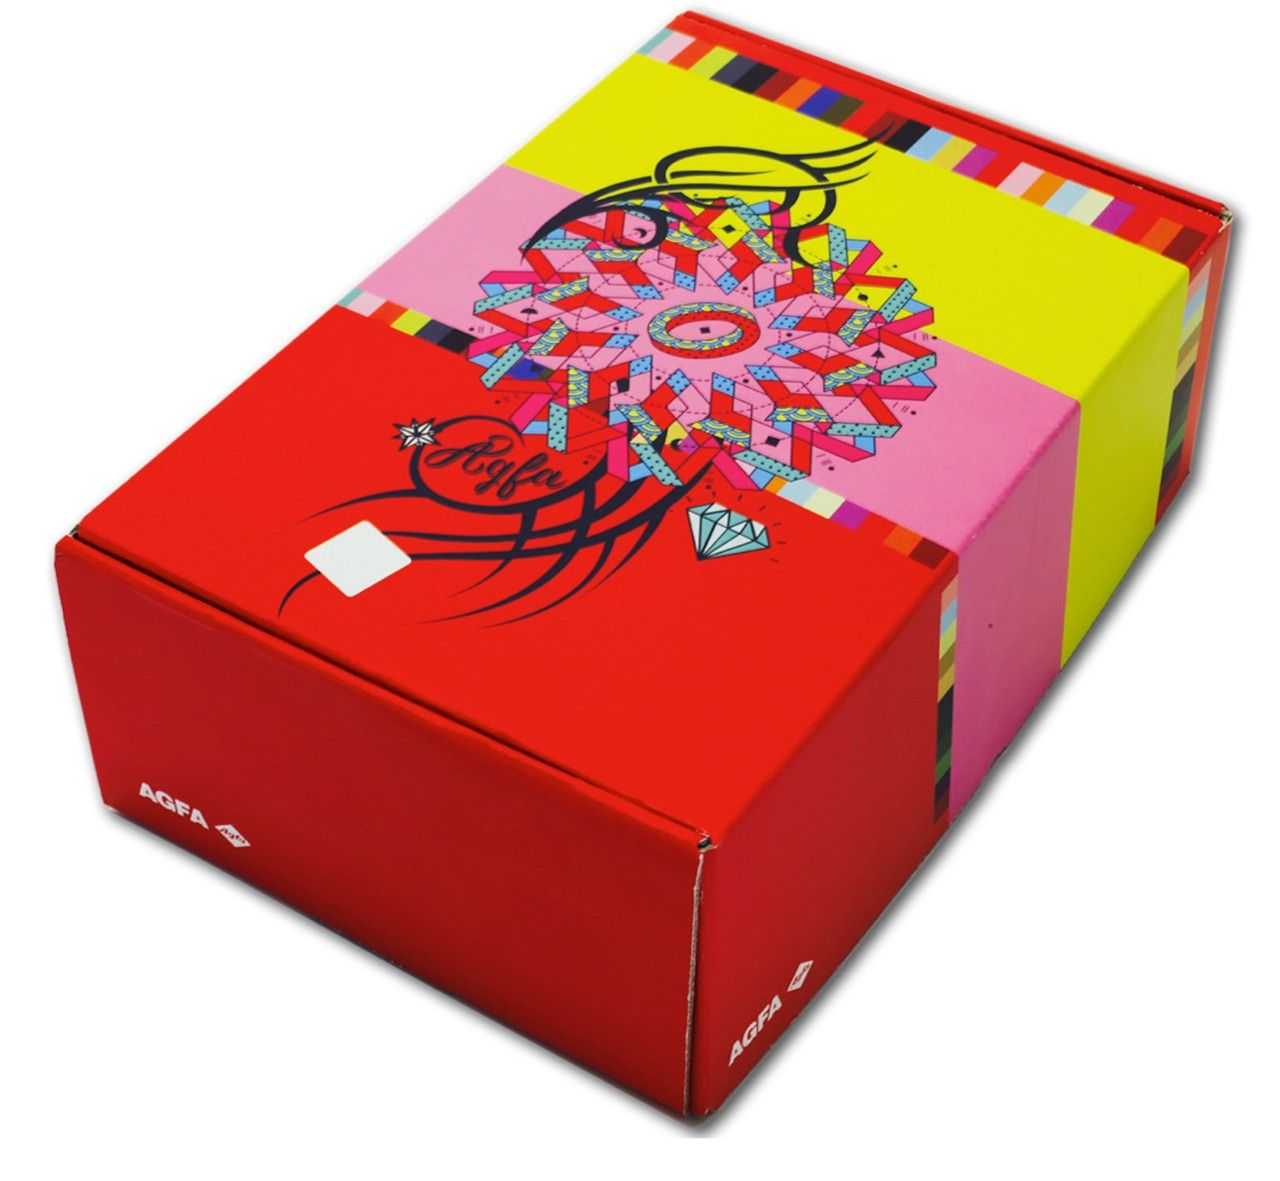 Agfa impresses with smart packaging technologies at drupa's Touchpoint Packaging